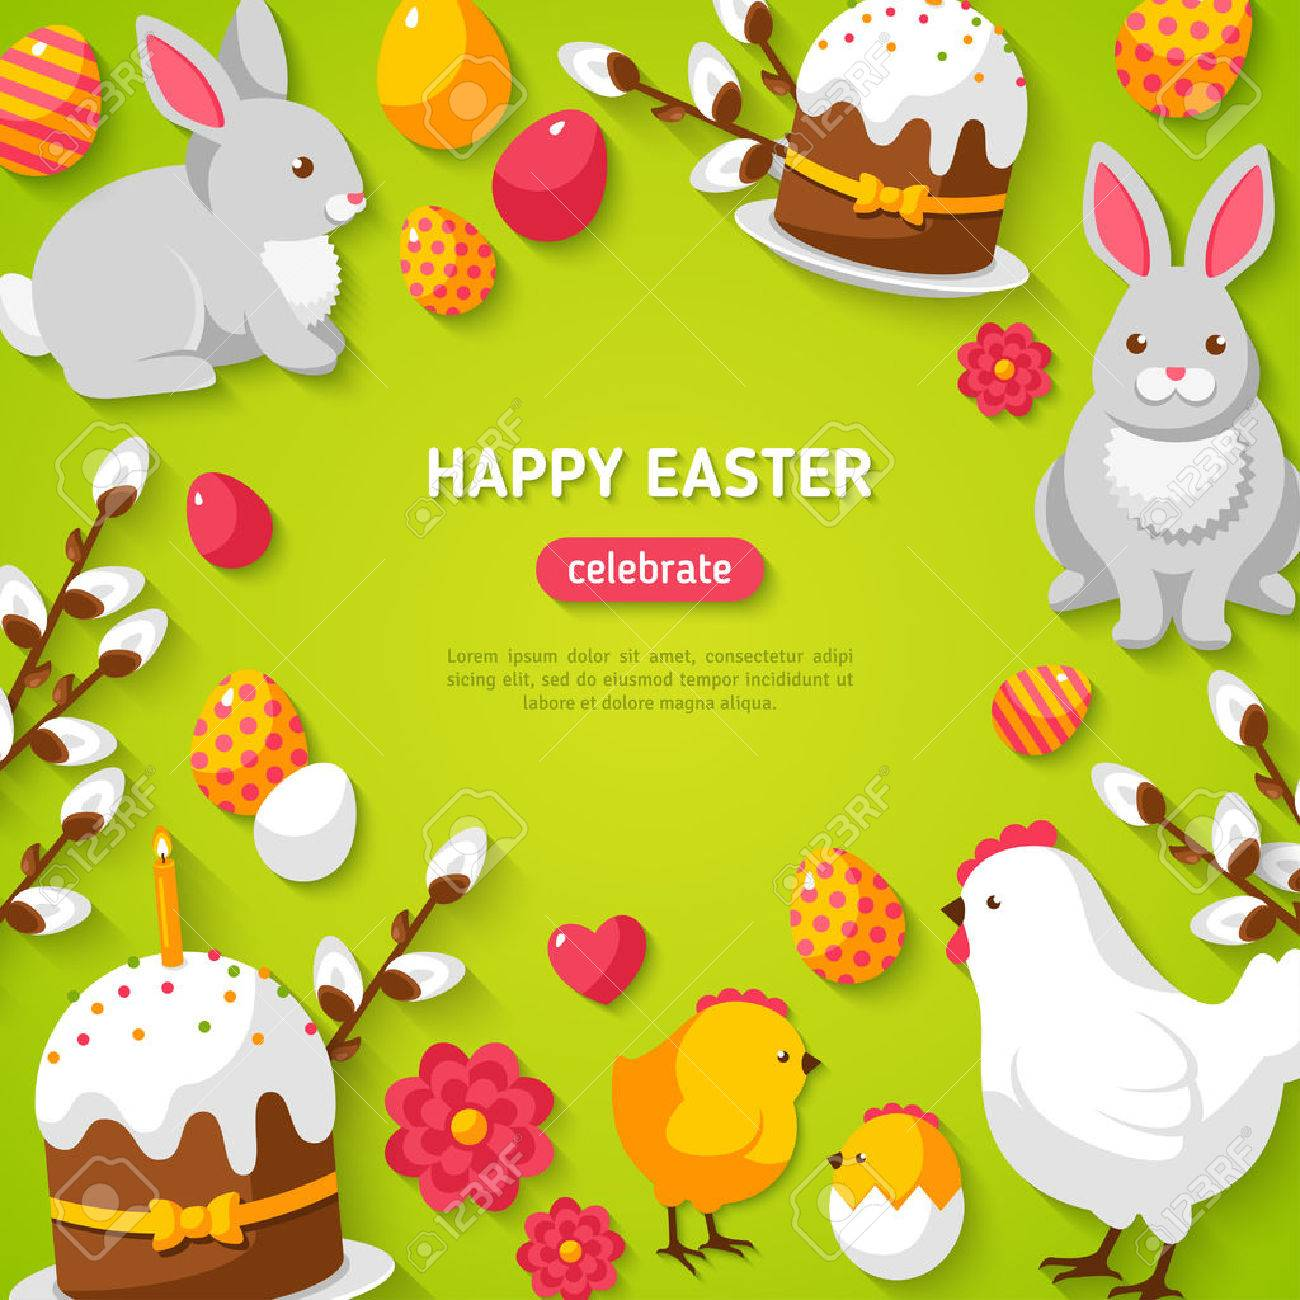 Happy Easter Green Background with Easter Symbols. Banque d'images - 51485011